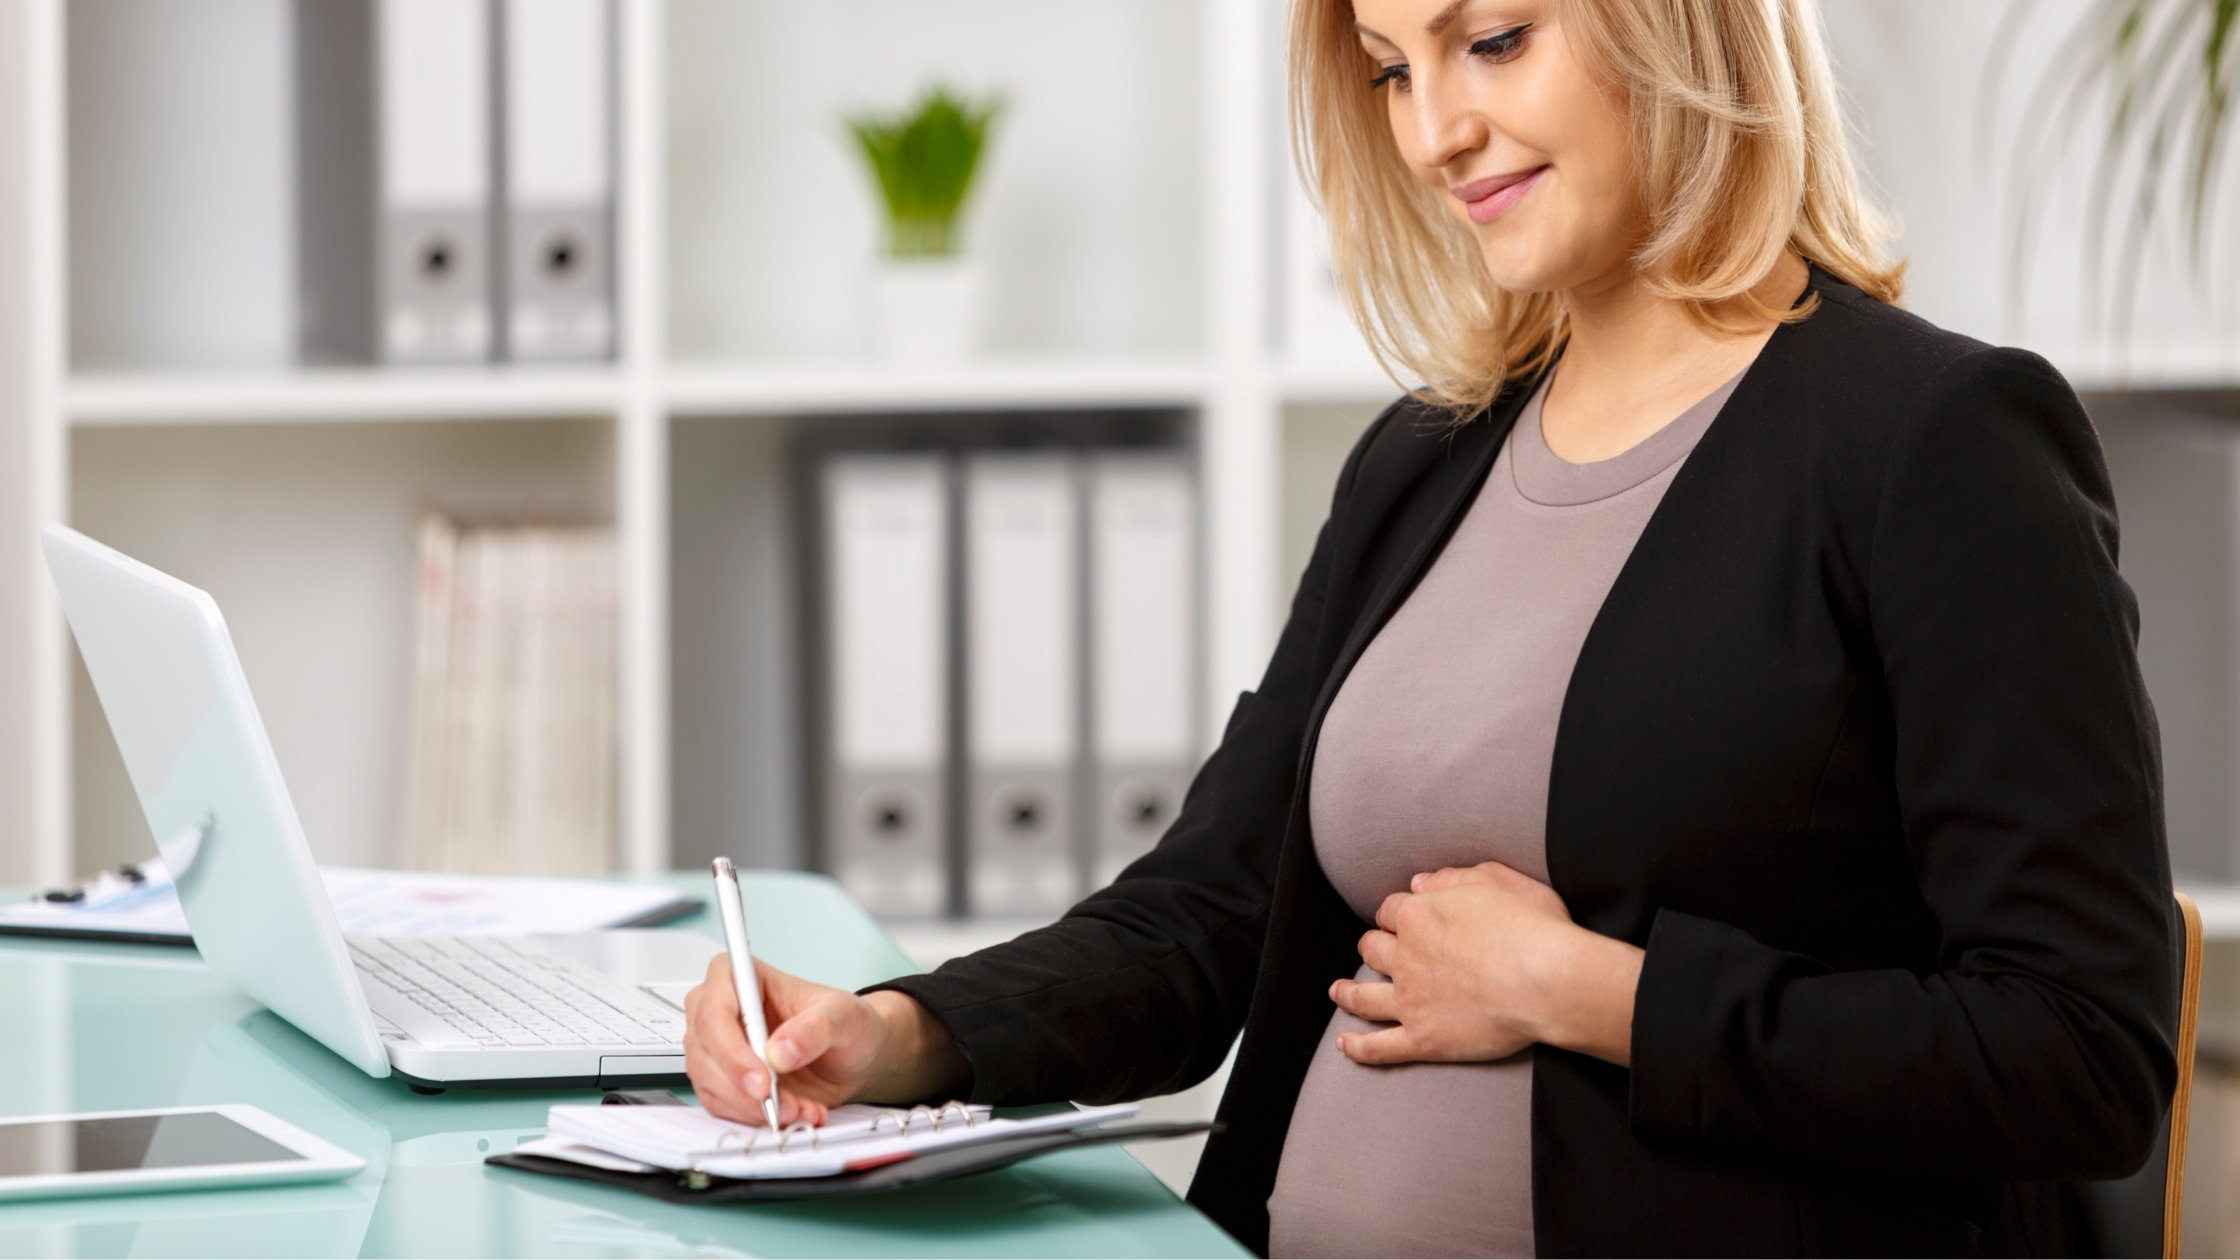 How long is maternity leave